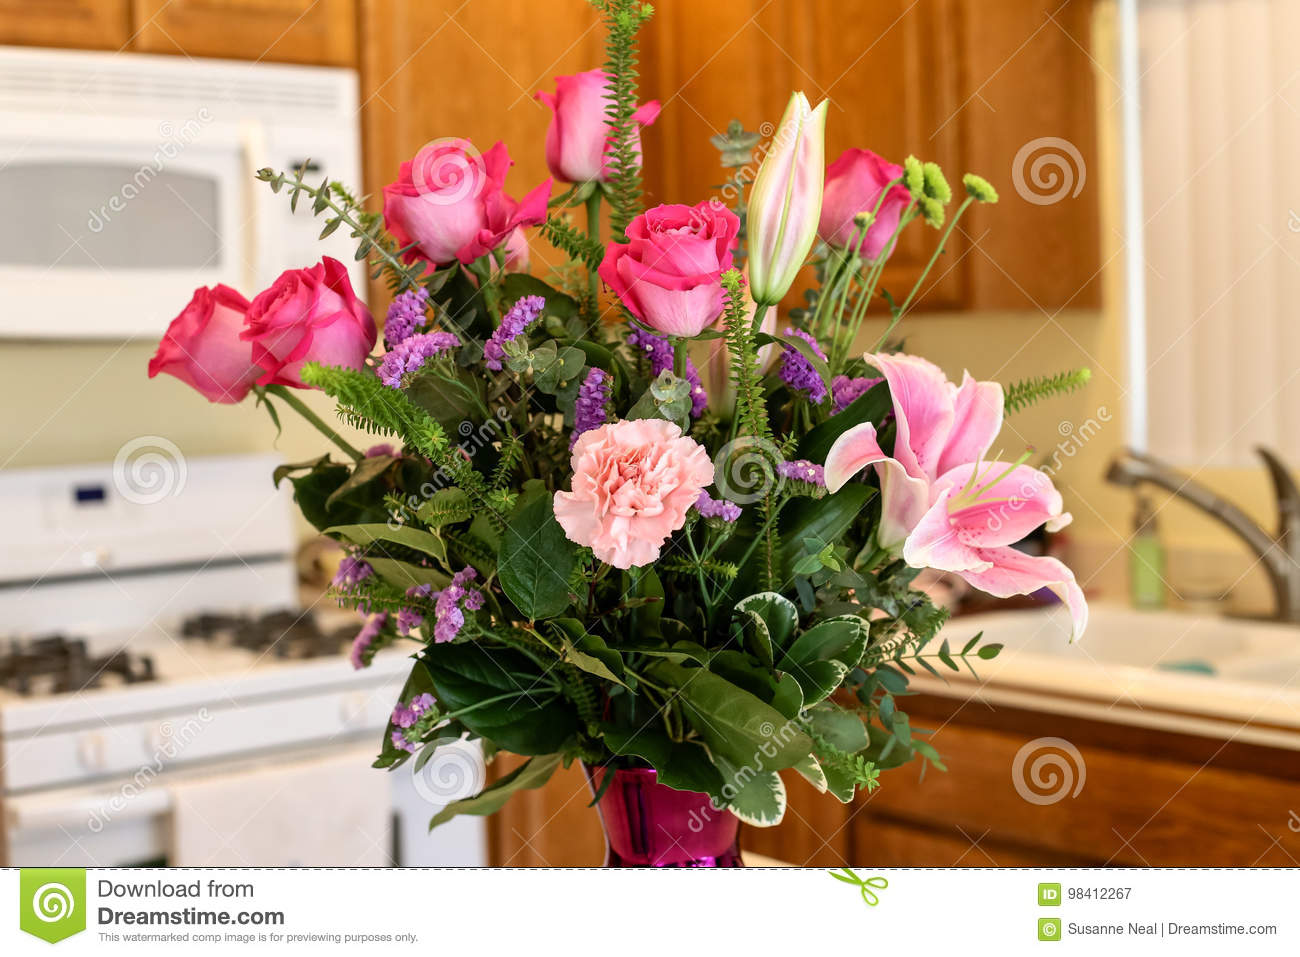 Beautiful Vase Of Pink Flowers Including Roses Carnations And